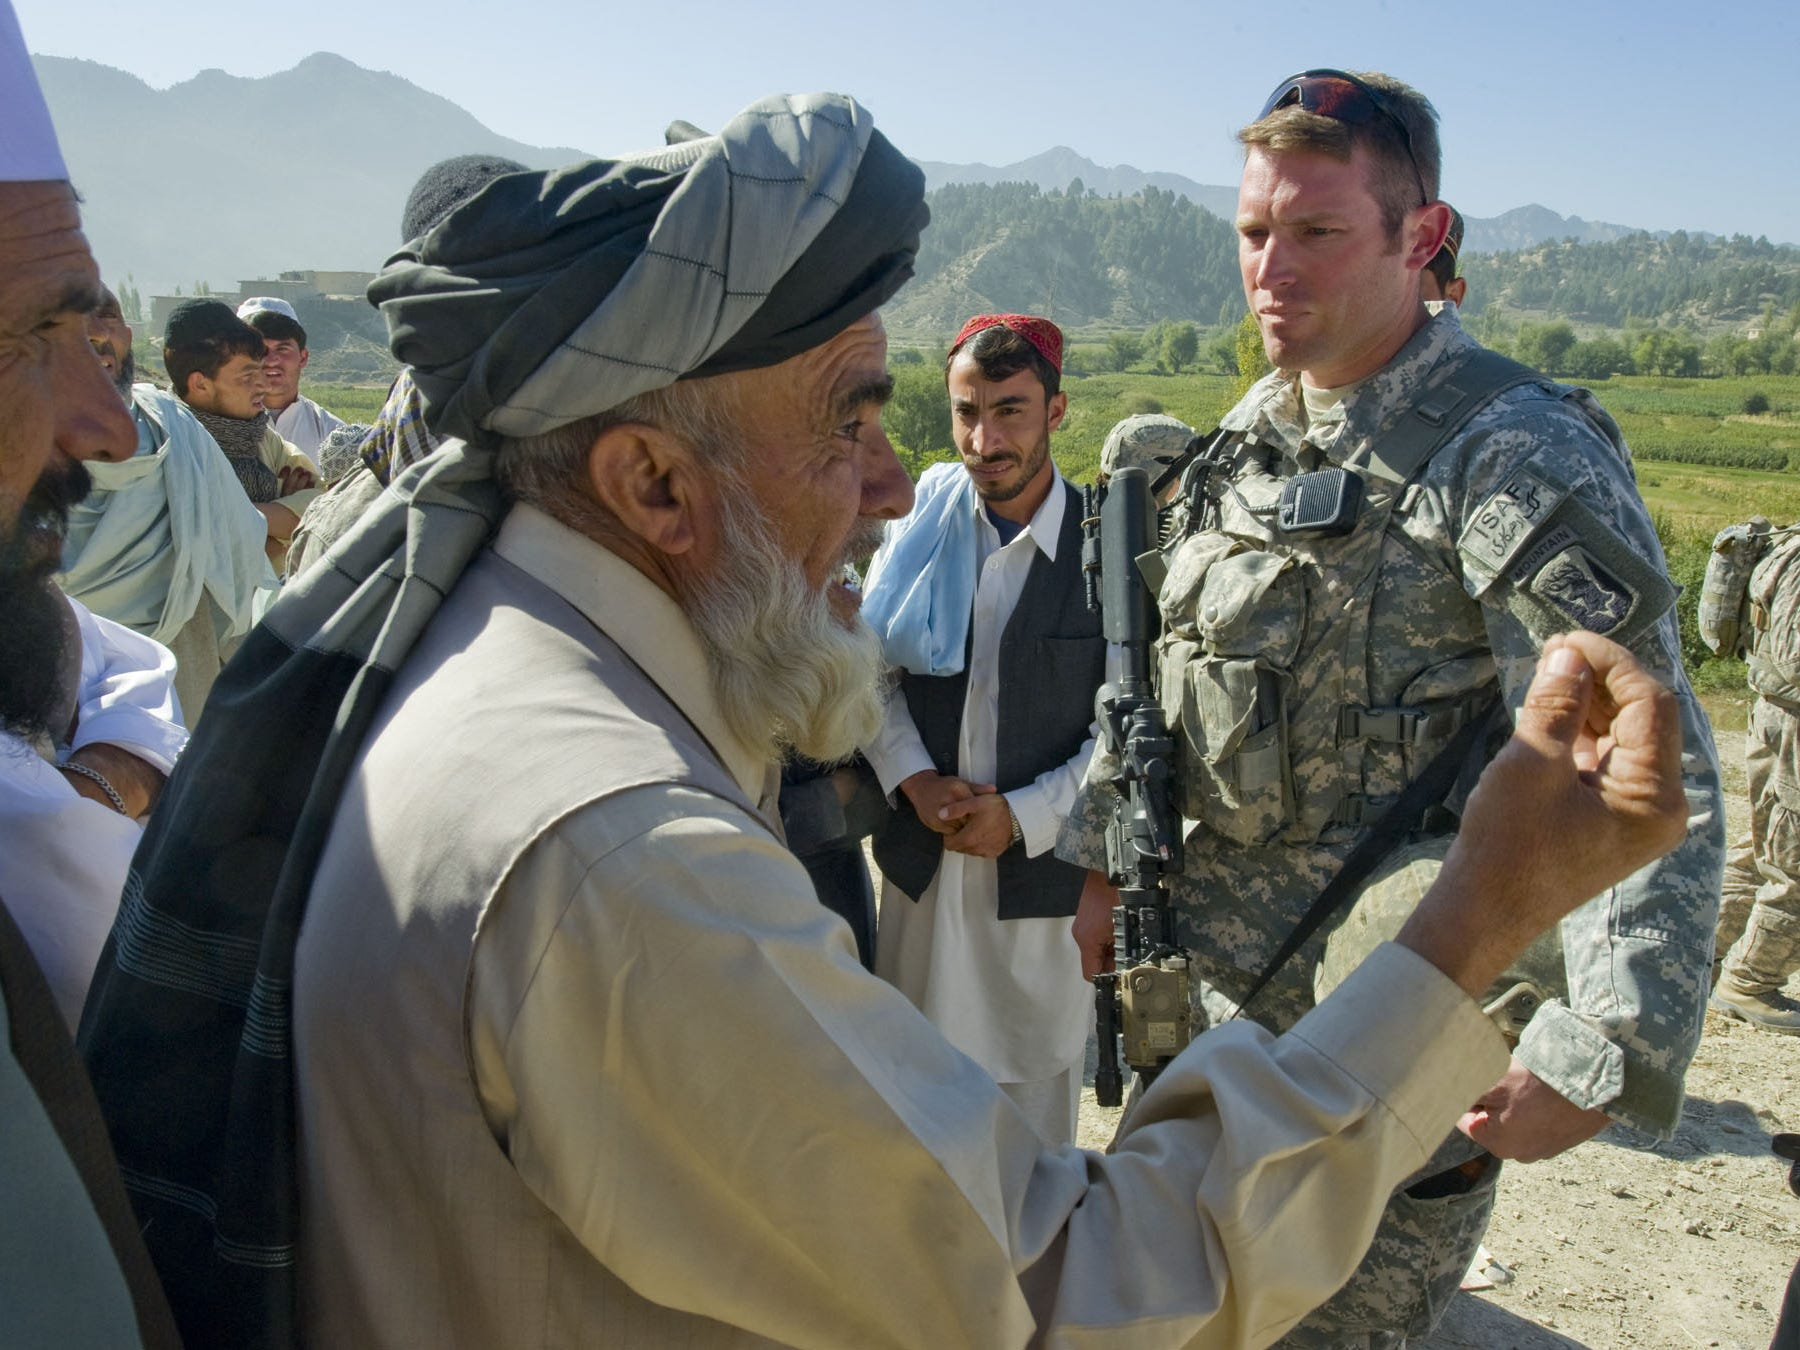 Right, Vermont National Guardsman Sgt. 1st Class Jay Pedro of Woodstock patiently listens to Malik Amanullah, a village elder in Kuzah Shegah, complain about the presence of soldiers there on Tuesday morning, September 21, 2010. Soldiers purposely arrive there unannounced looking for information about an insurgent spotter that was seen there as Combat Outpost Herrera was being attacked by mortar fire. Amanullah was upset there was no warning of the visit. But after Pedro patiently listened, and tolerated the elder's complaints in front of the village residents, the tone quickly changed and his men were invited to drink tea. Later, Pedro would comment that if he had not allowed the leader to demonstrate his authority in front of the soldiers and his people -- a sign of respect on the part of Vermont soldiers -- that the visit could have taken a turn for the worst.